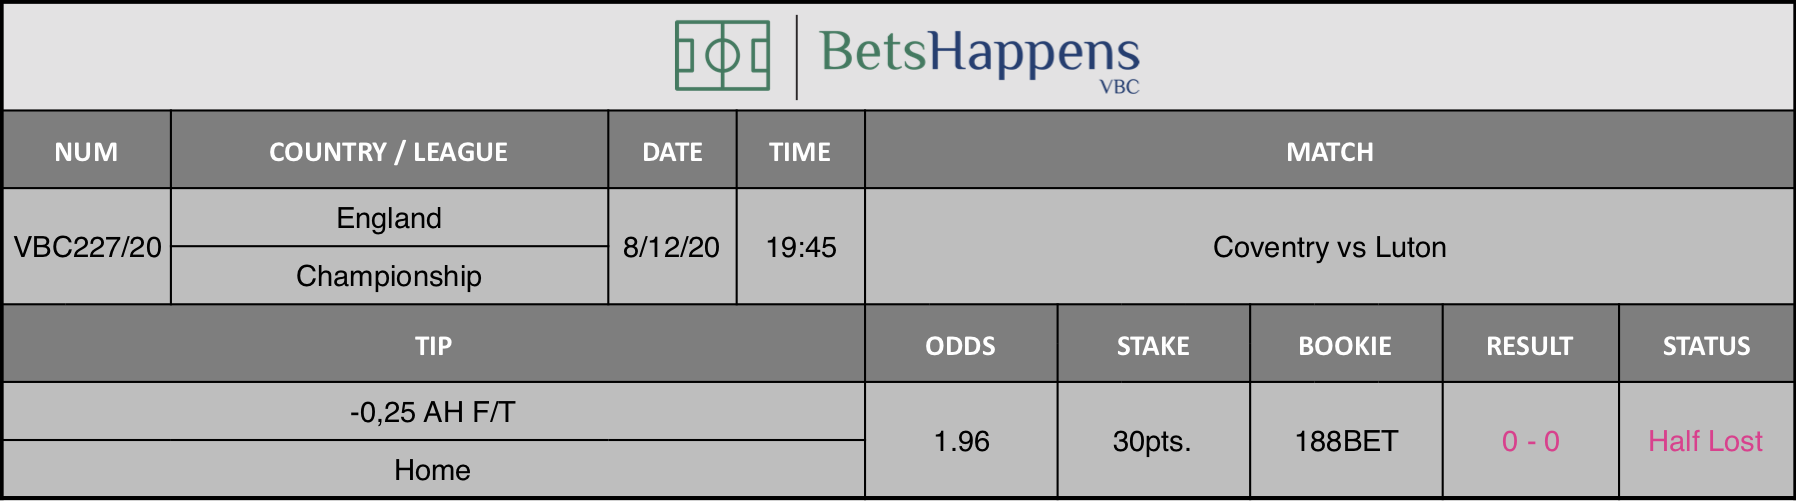 Results of our tip for the Coventry vs Luton match where -0,25 AH F/T Home is recommended.